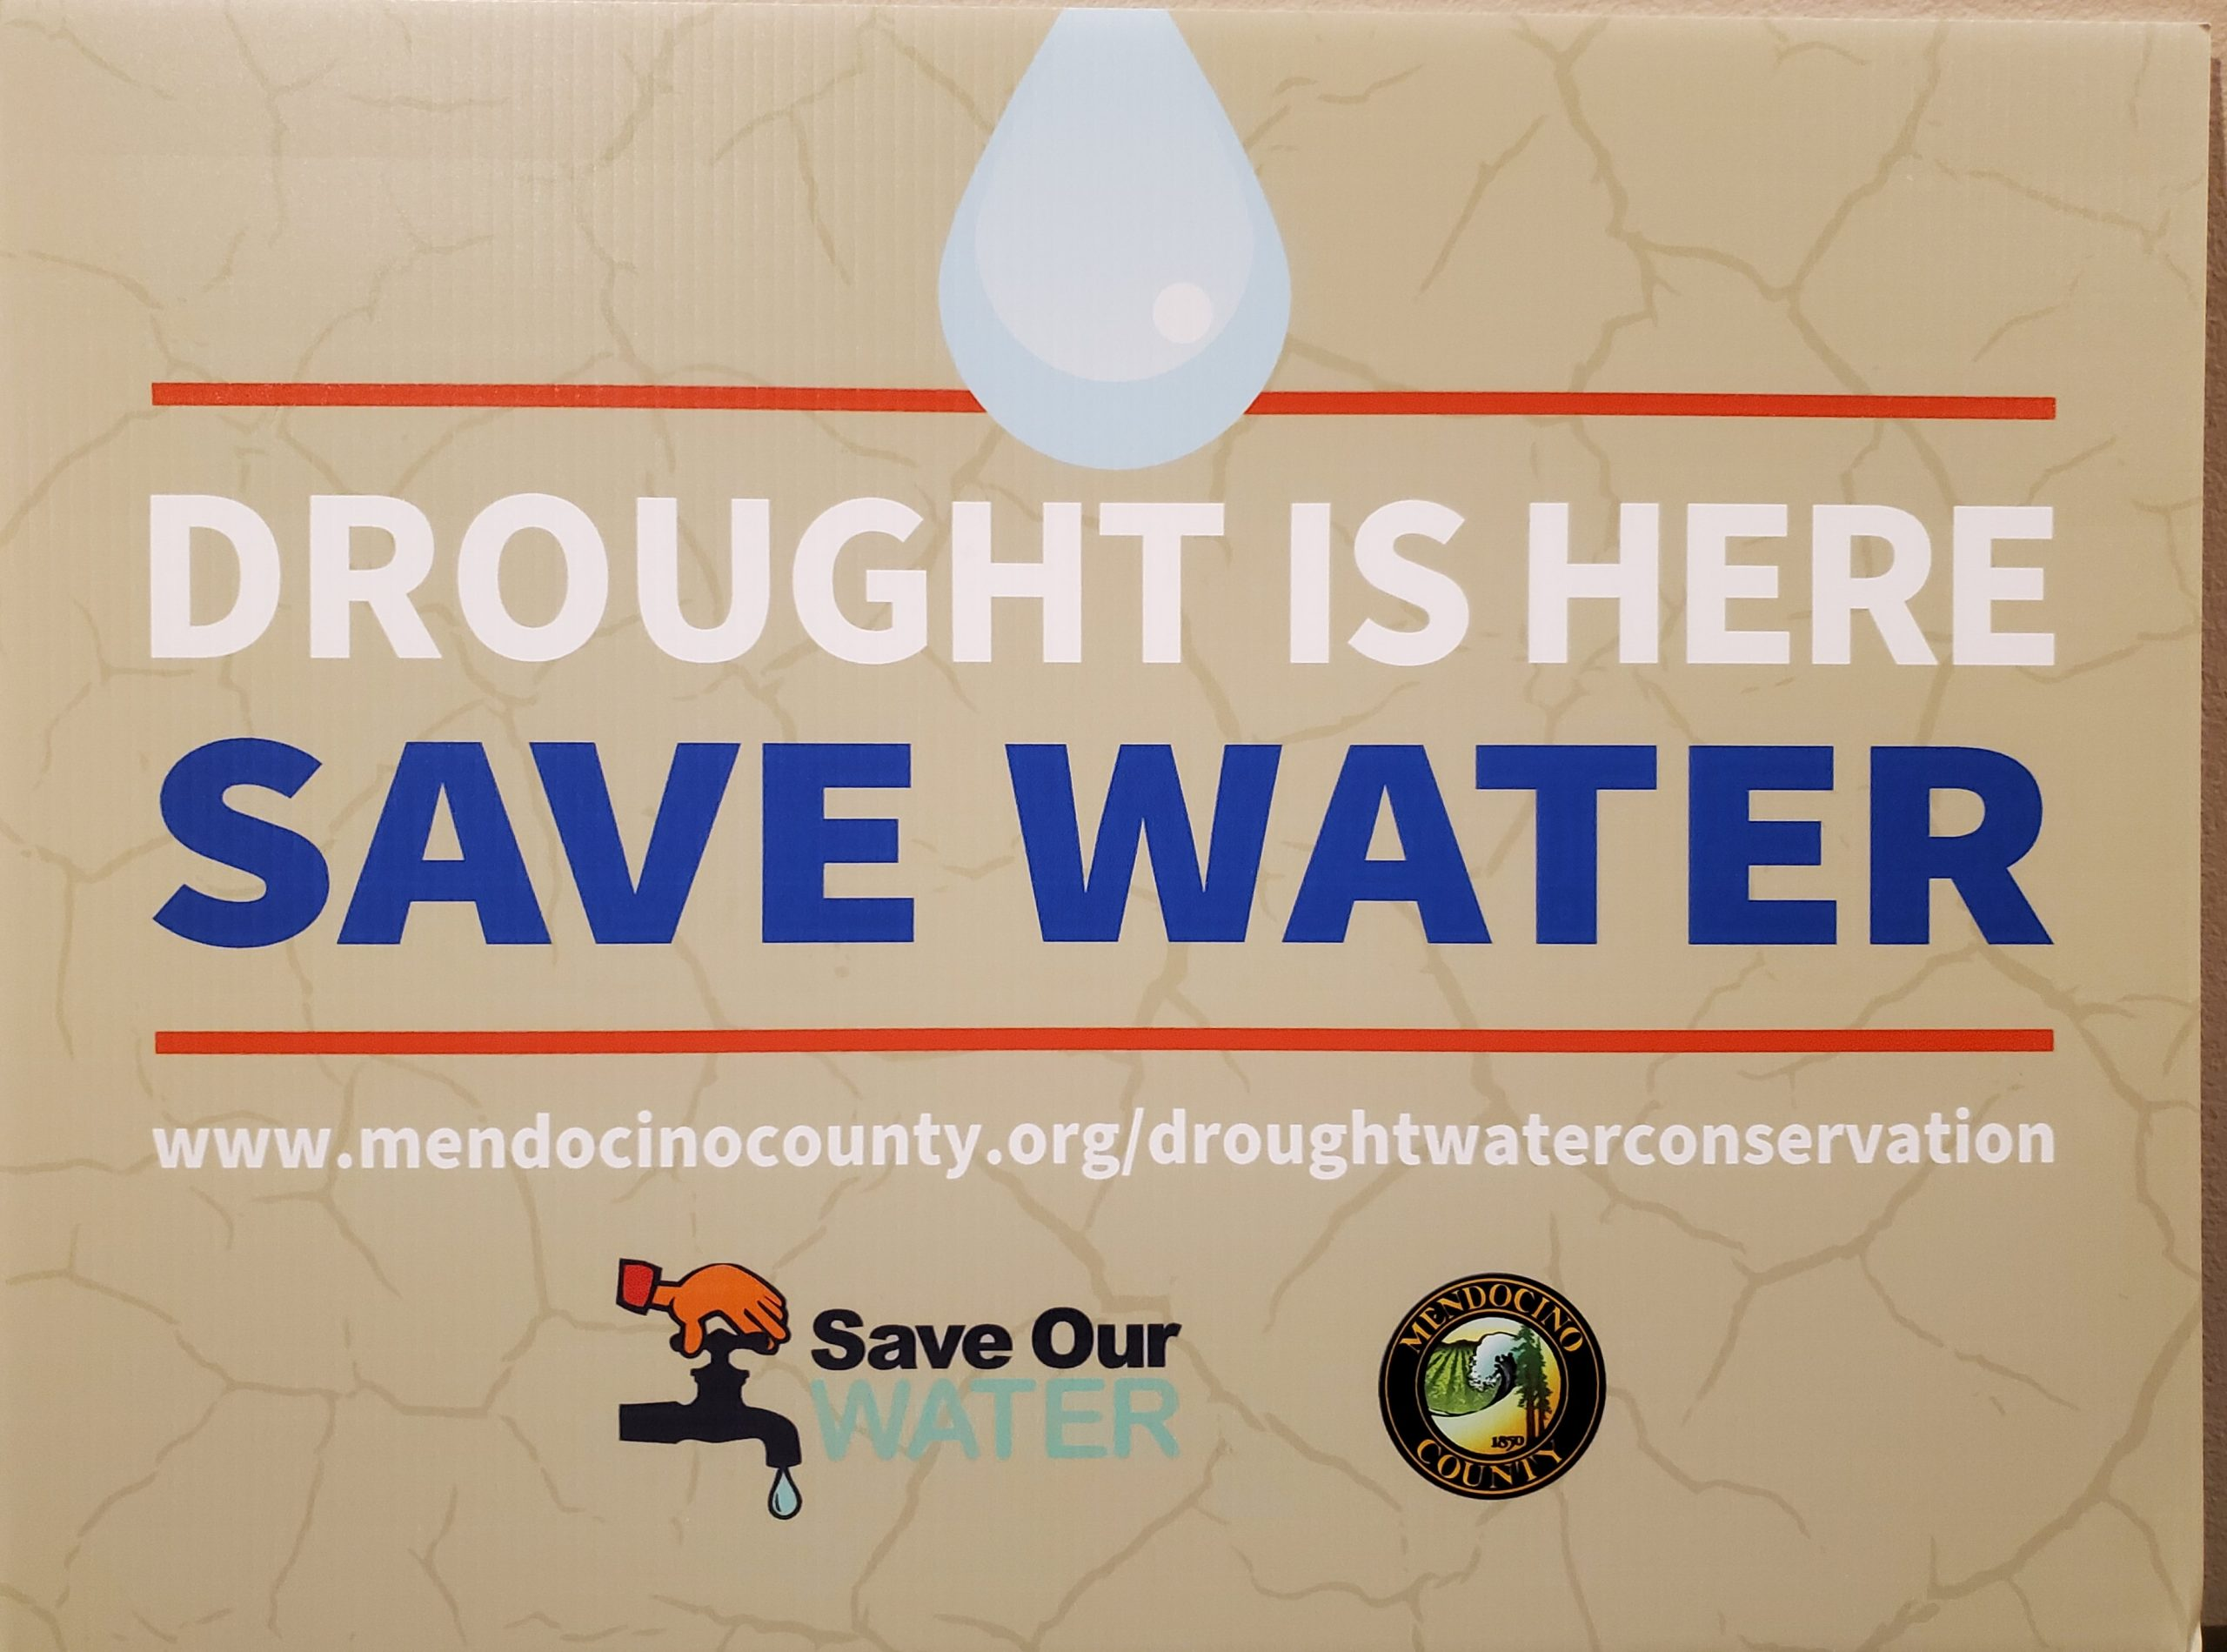 Drought is here sign